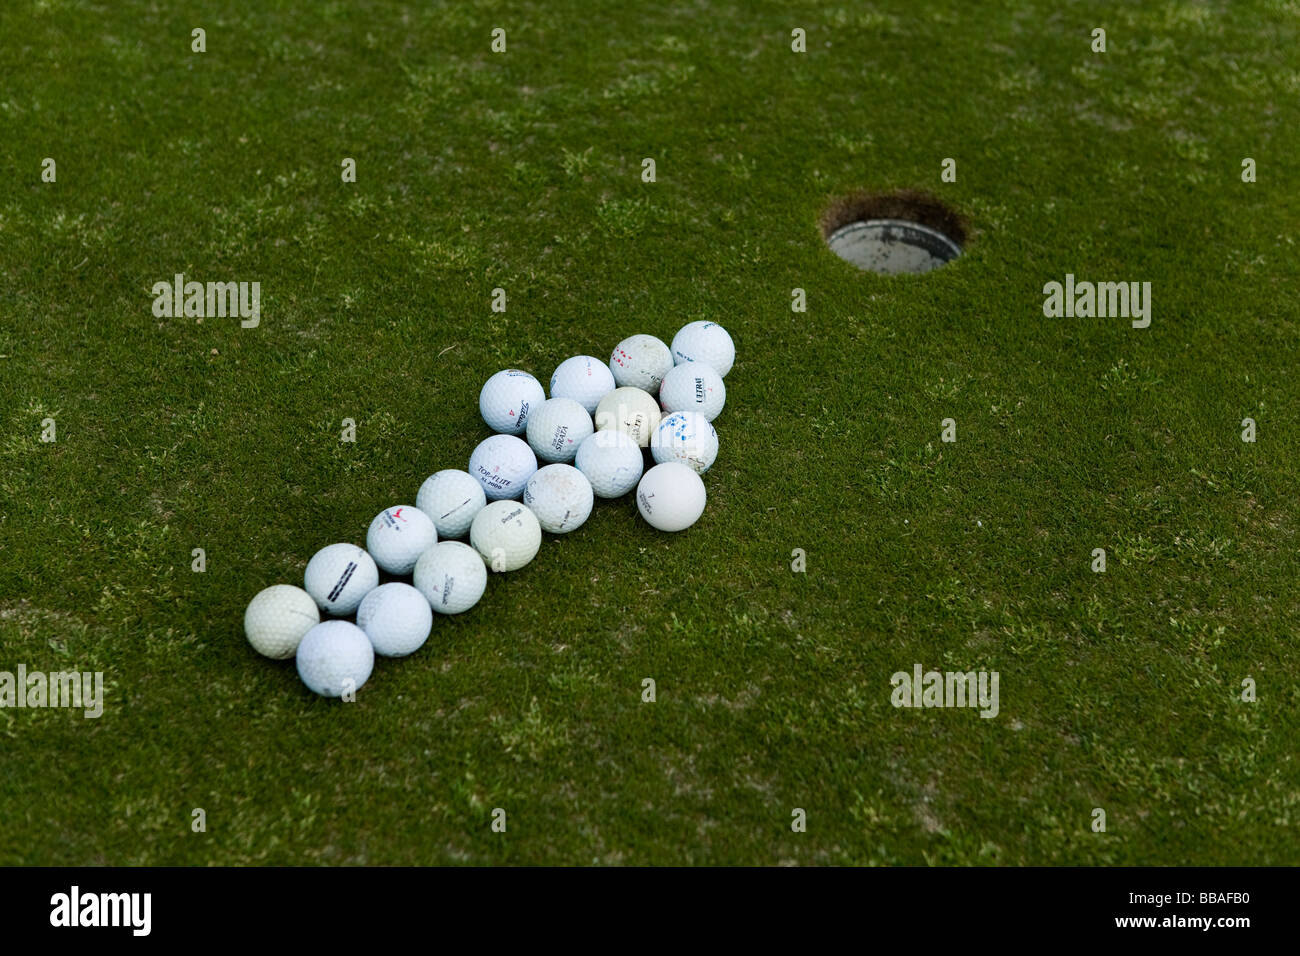 Arrow of golf balls pointing to a hole on a putting green - Stock Image